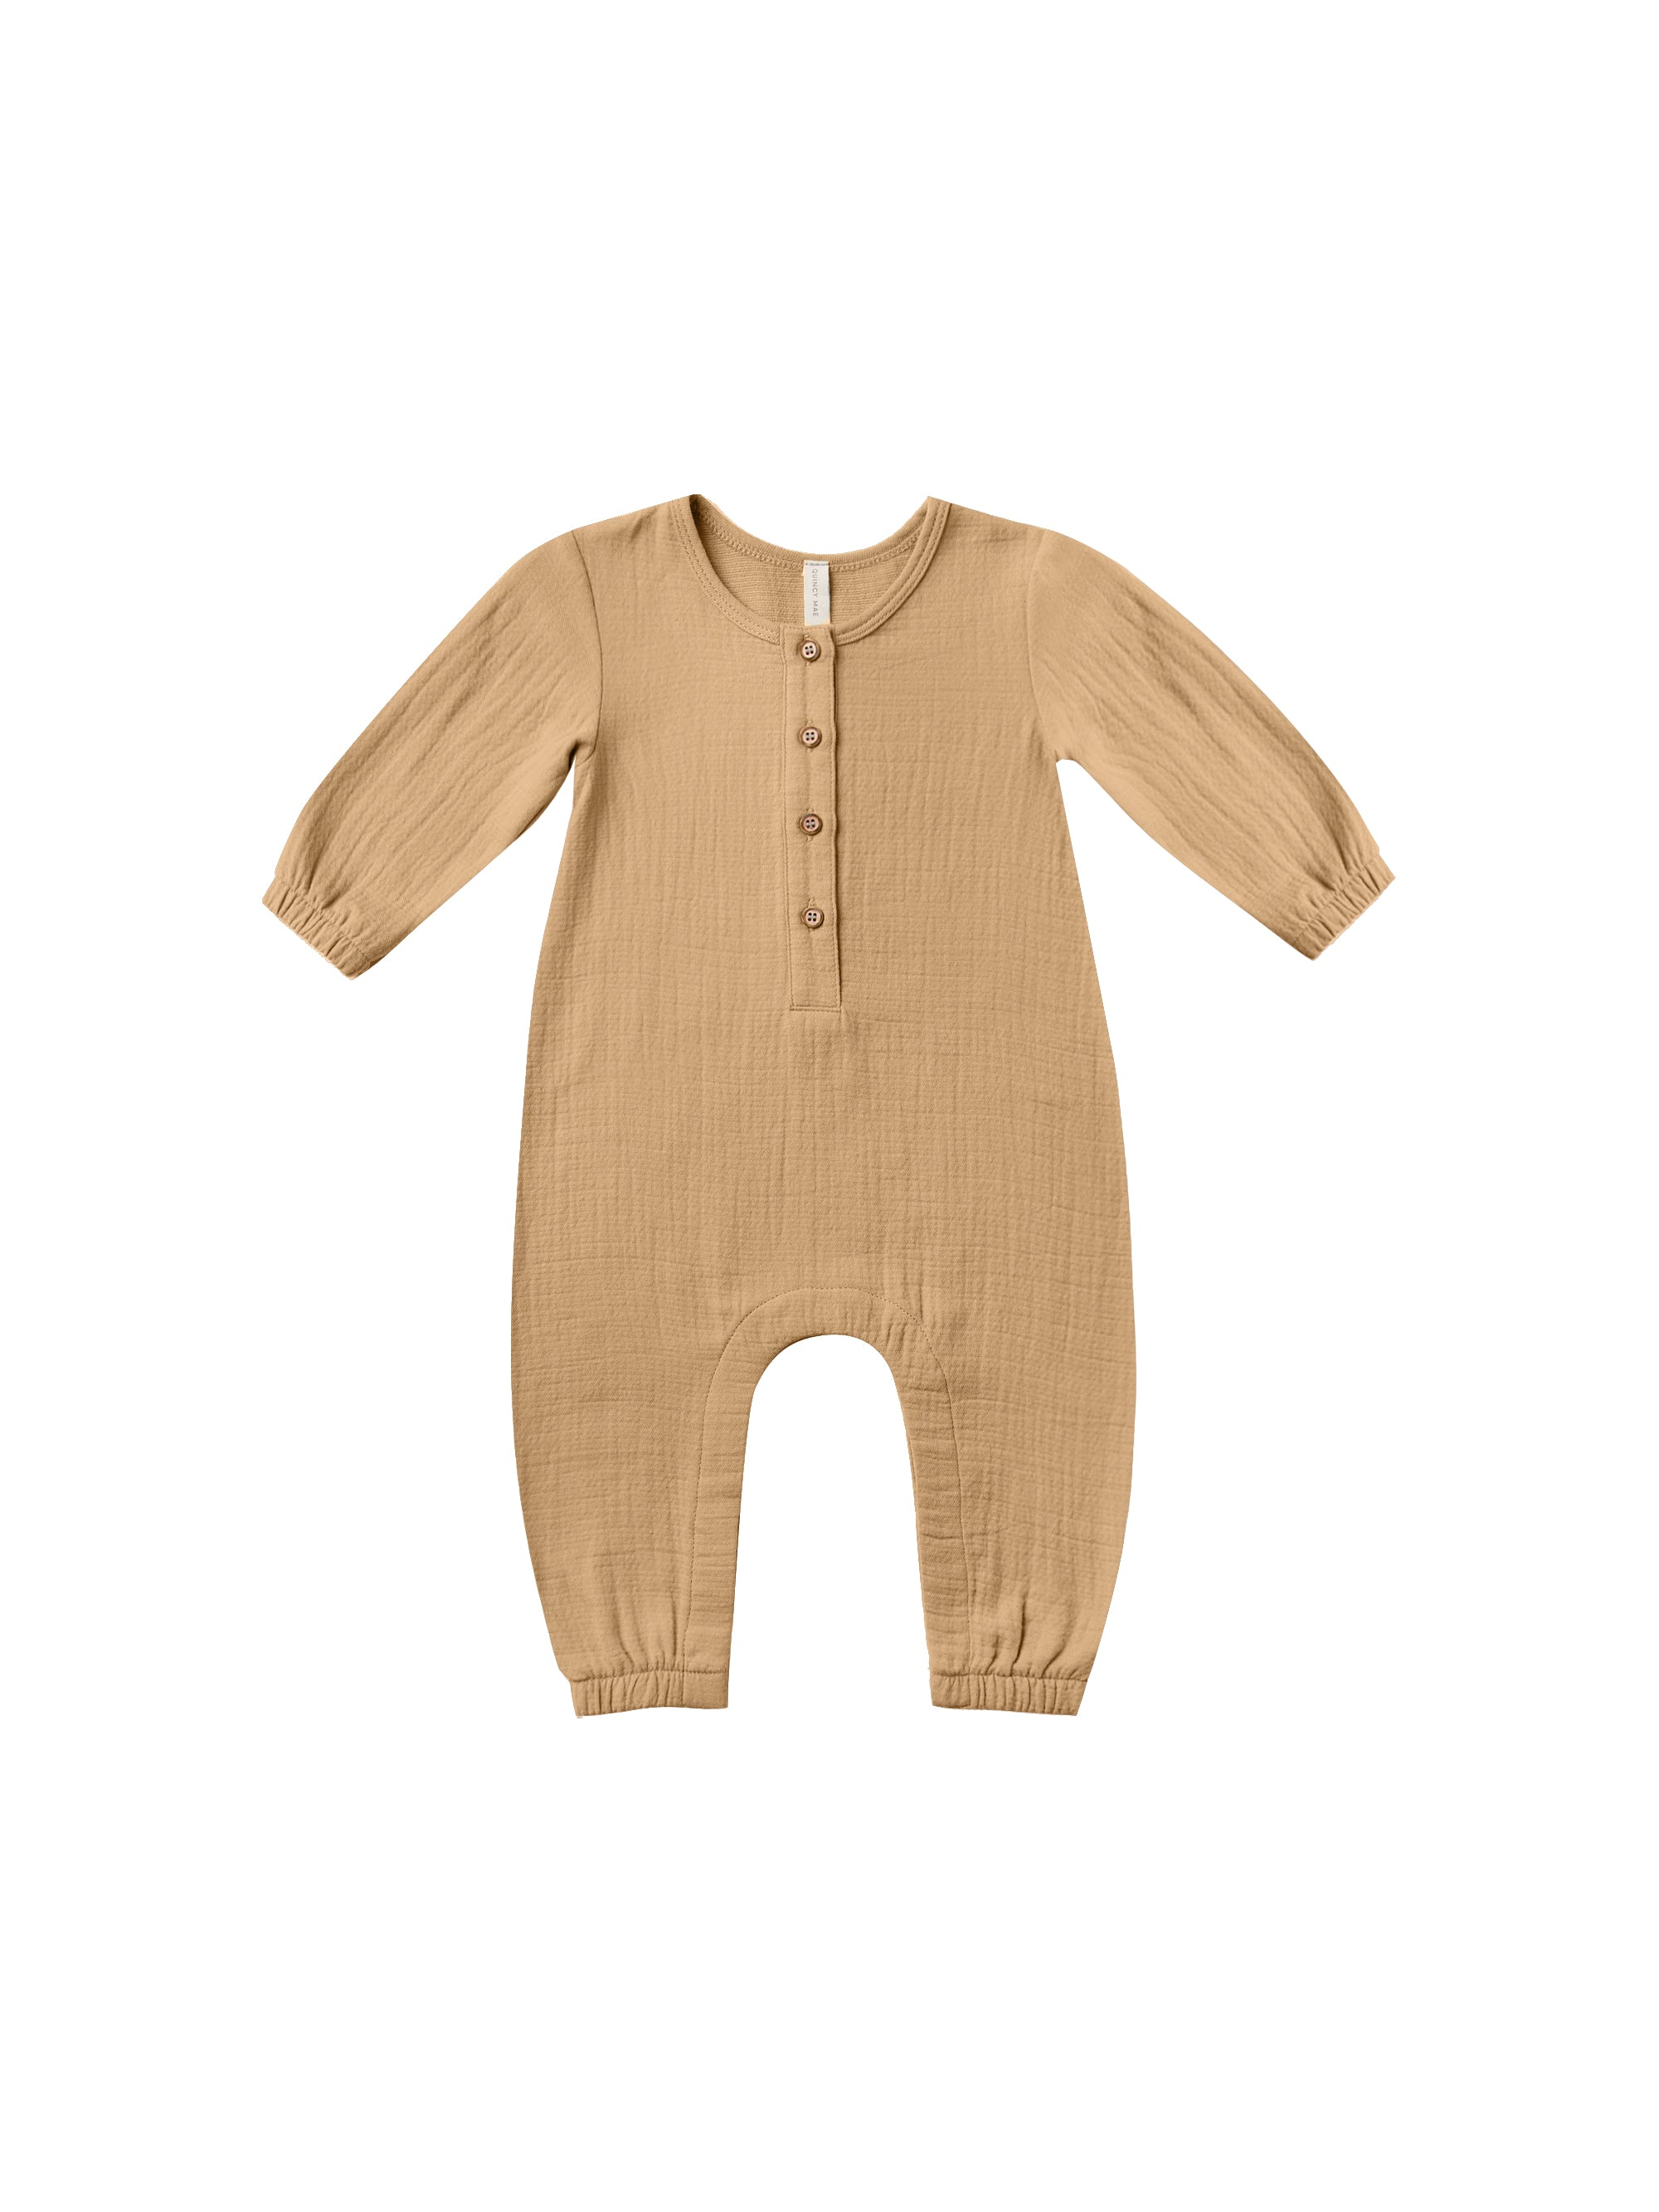 QUINCY MAE woven JUMPSUIT / HONEY